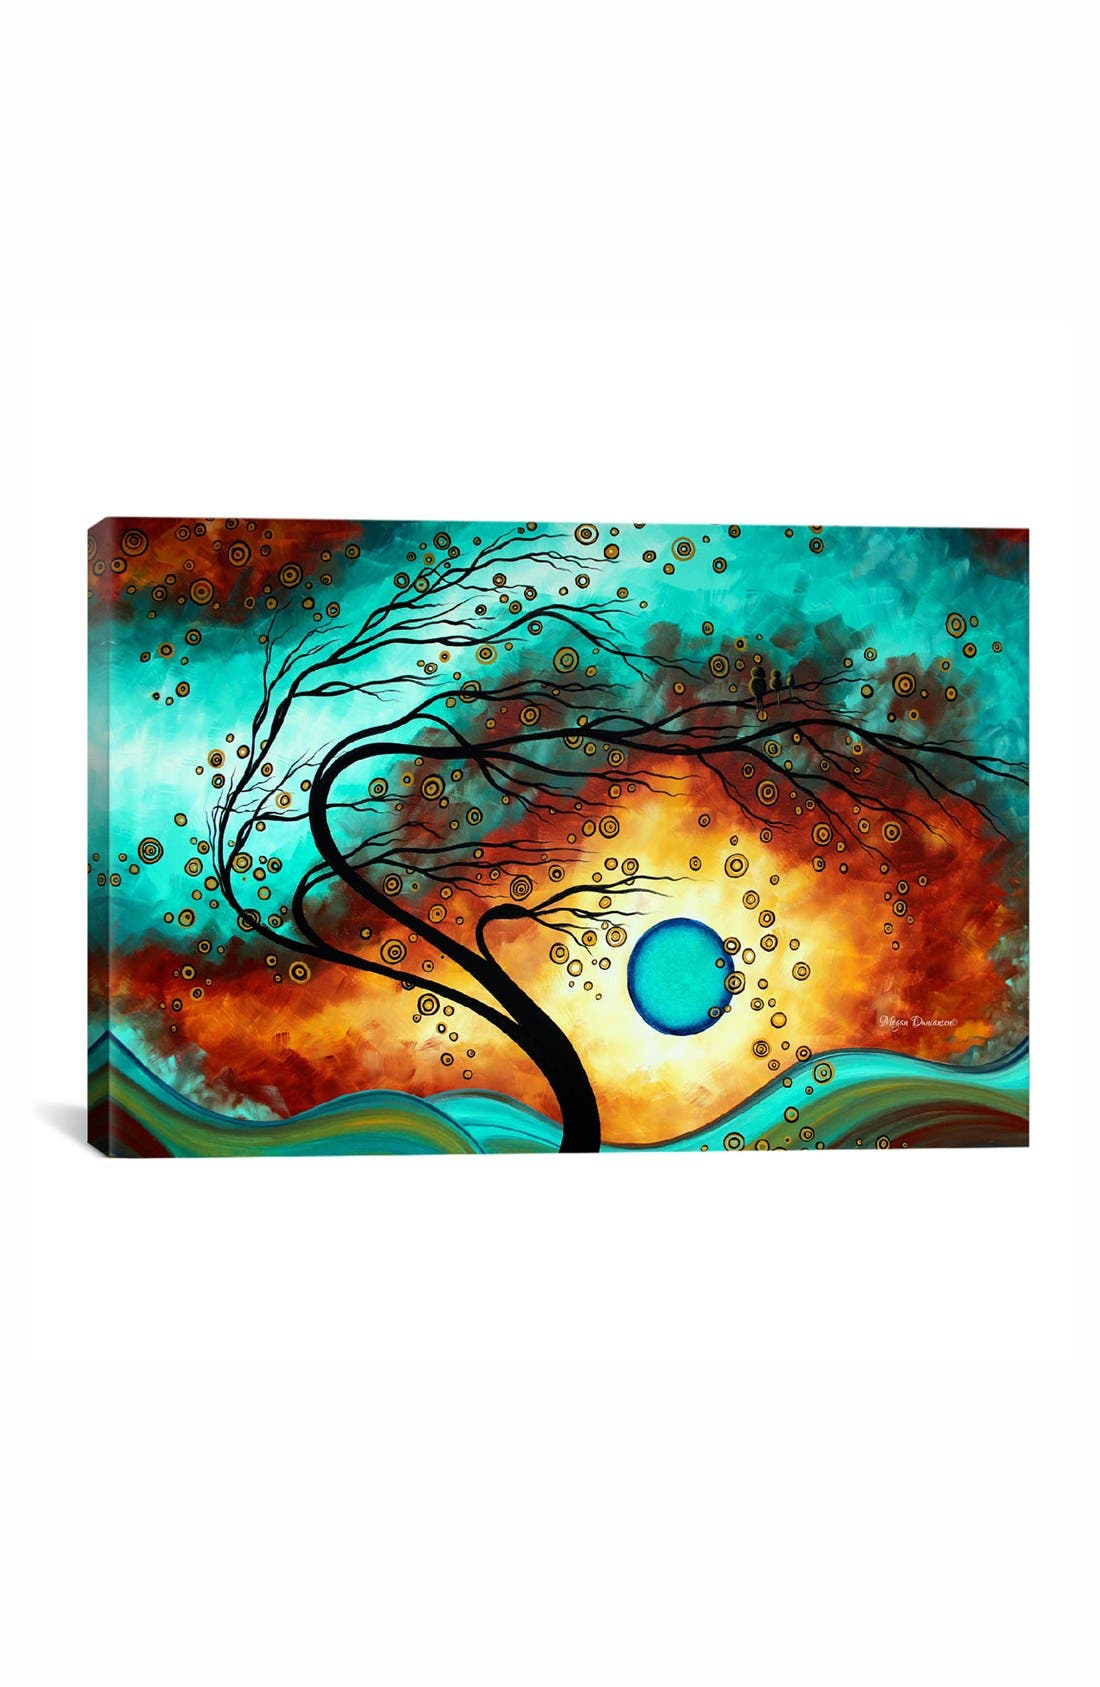 'Family Joy - Megan Duncanson' Giclée Print Canvas Art,                             Main thumbnail 1, color,                             Blue/ Green